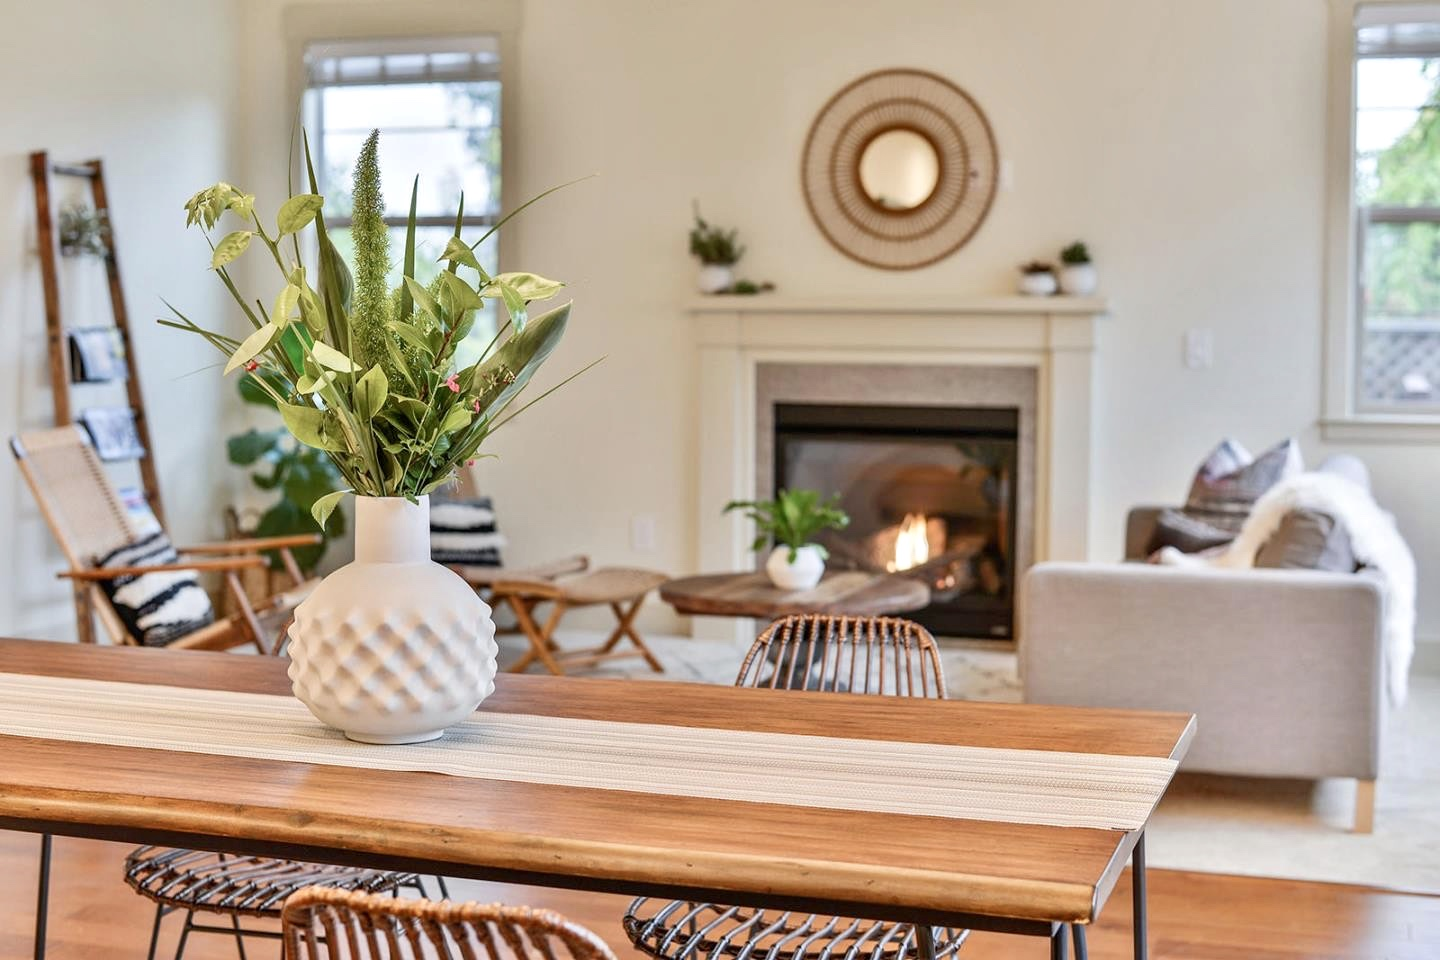 real estate projects - Vacant Staging, Occupied Staging & Market Preparation